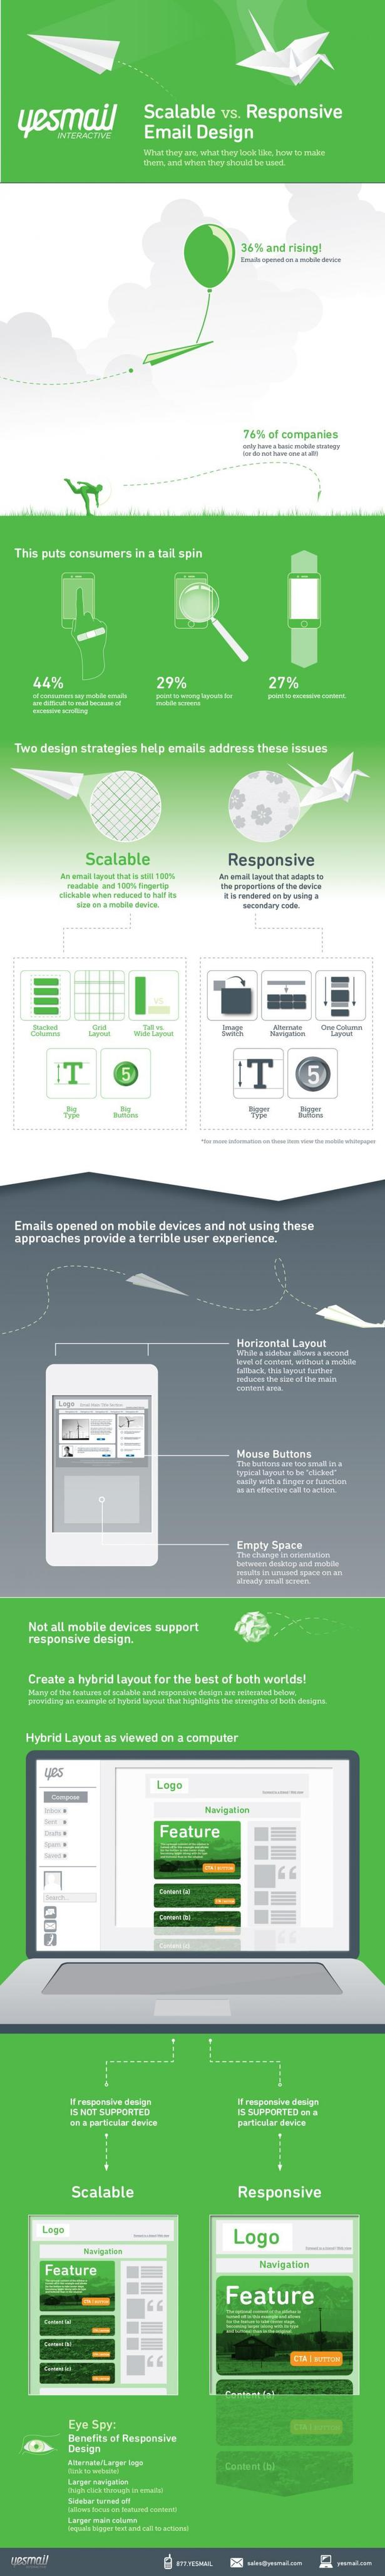 Responsive email design: five case studies and an infographic on how it improves engagement